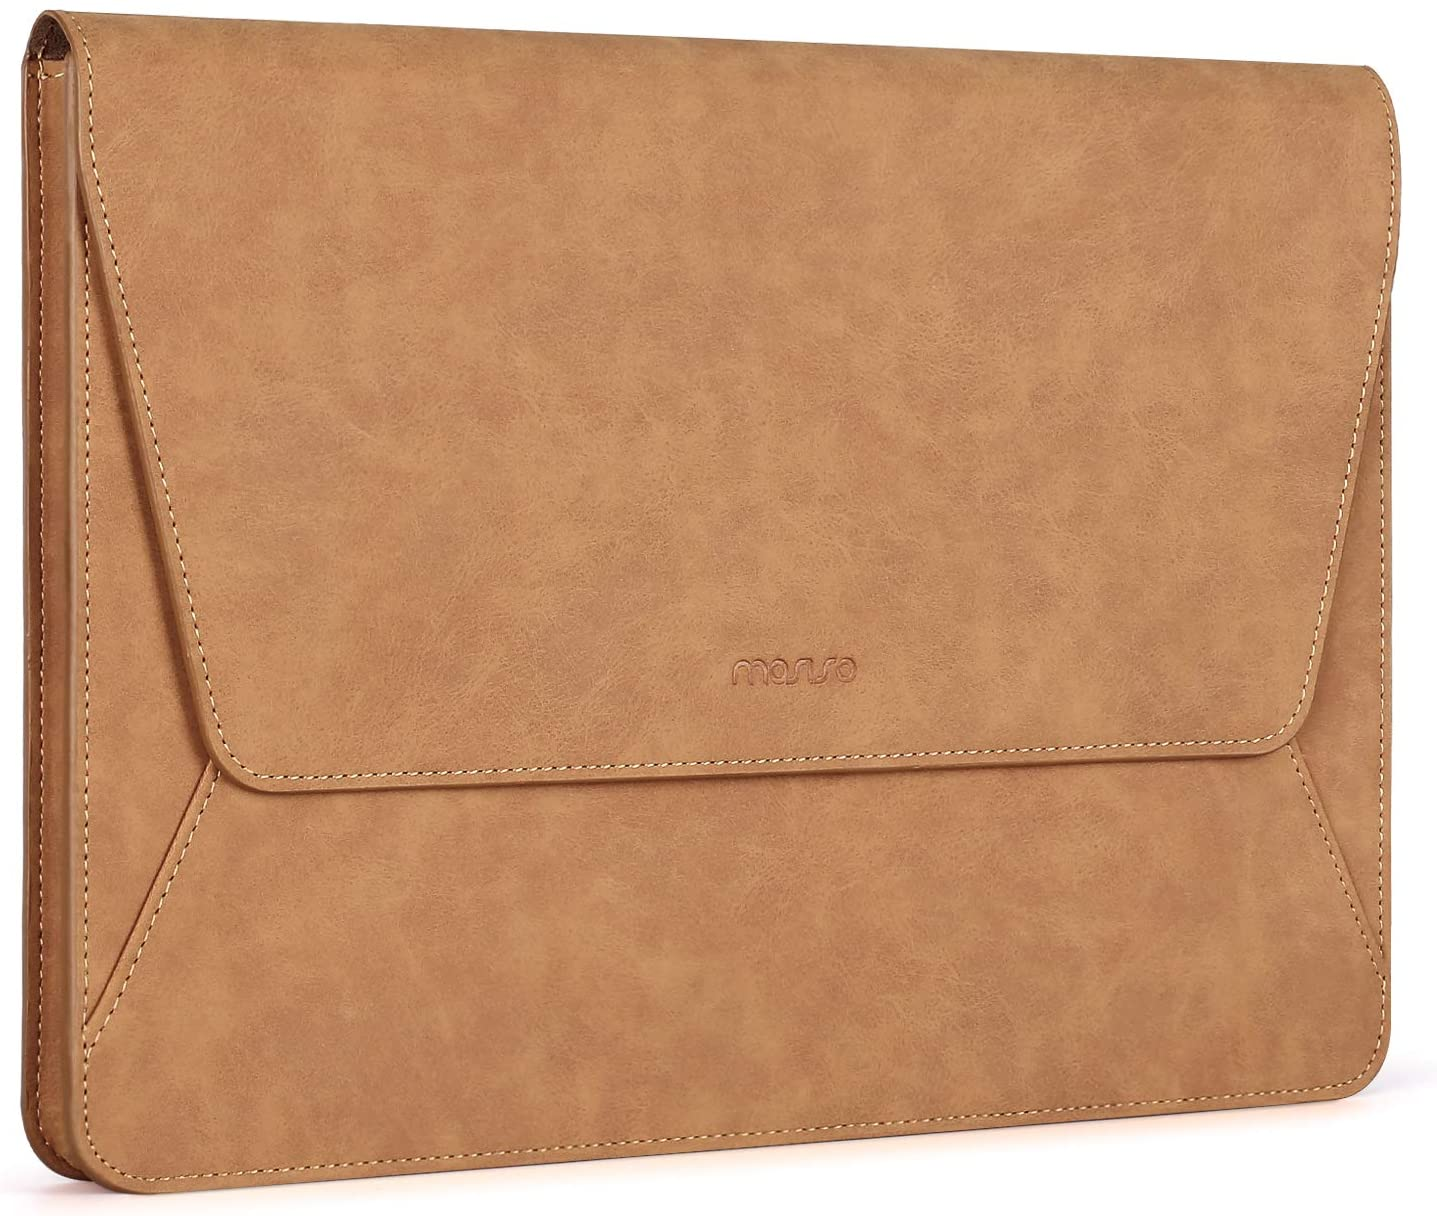 MOSISO Laptop Sleeve Compatible with 2020-2018 MacBook Air 13 A2179/A1932, 2020-2016 MacBook Pro 13 A2251 A2289 A2159/A1989/A1706/A1708, PU Leather Ultra Slim Flap Style Protective Case, Brown